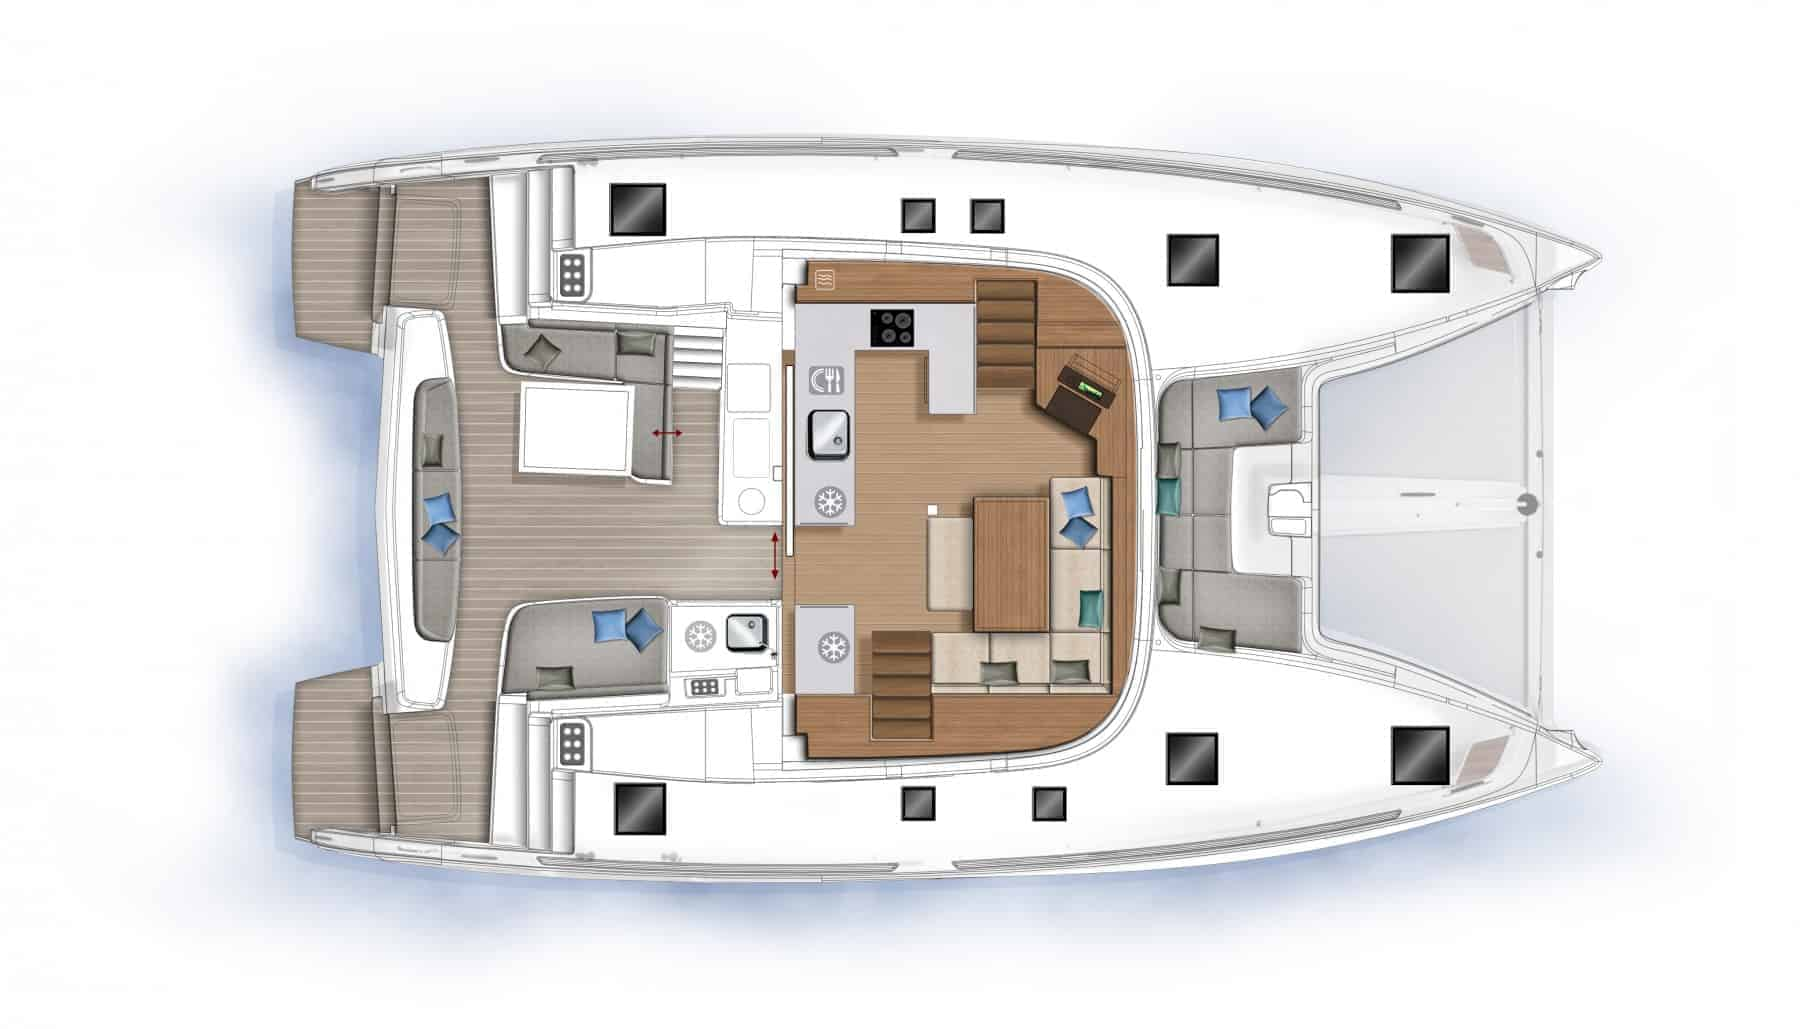 The spacious saloon and cockpit plan of the Lagoon 46 yacht